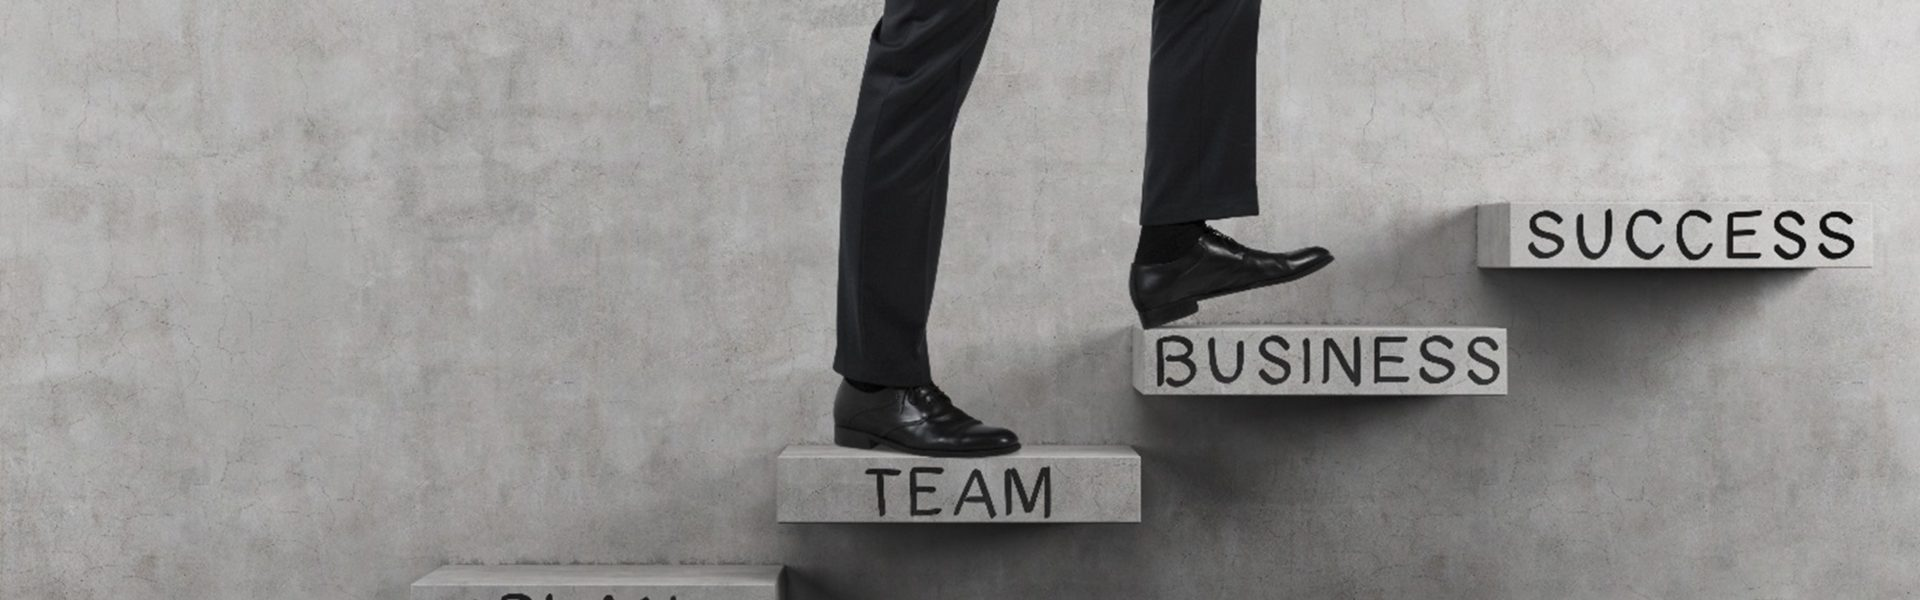 How to Develop a Successful Business Plan for a Startup Despite a Low Budget